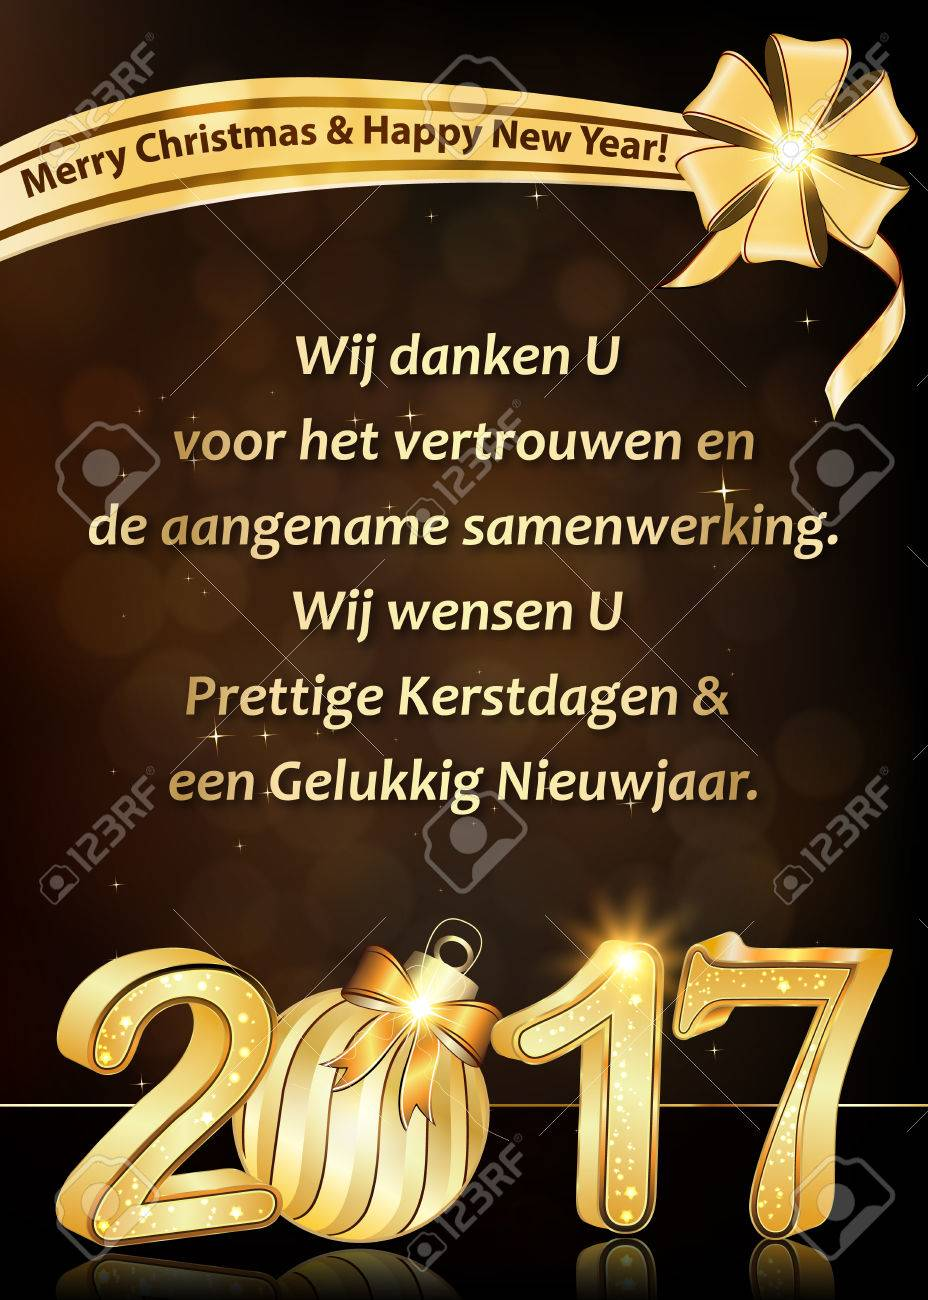 stock photo thank you dutch business new year greeting card we wish to thank you for your trust and cooperation we wish you merry christmas and happy